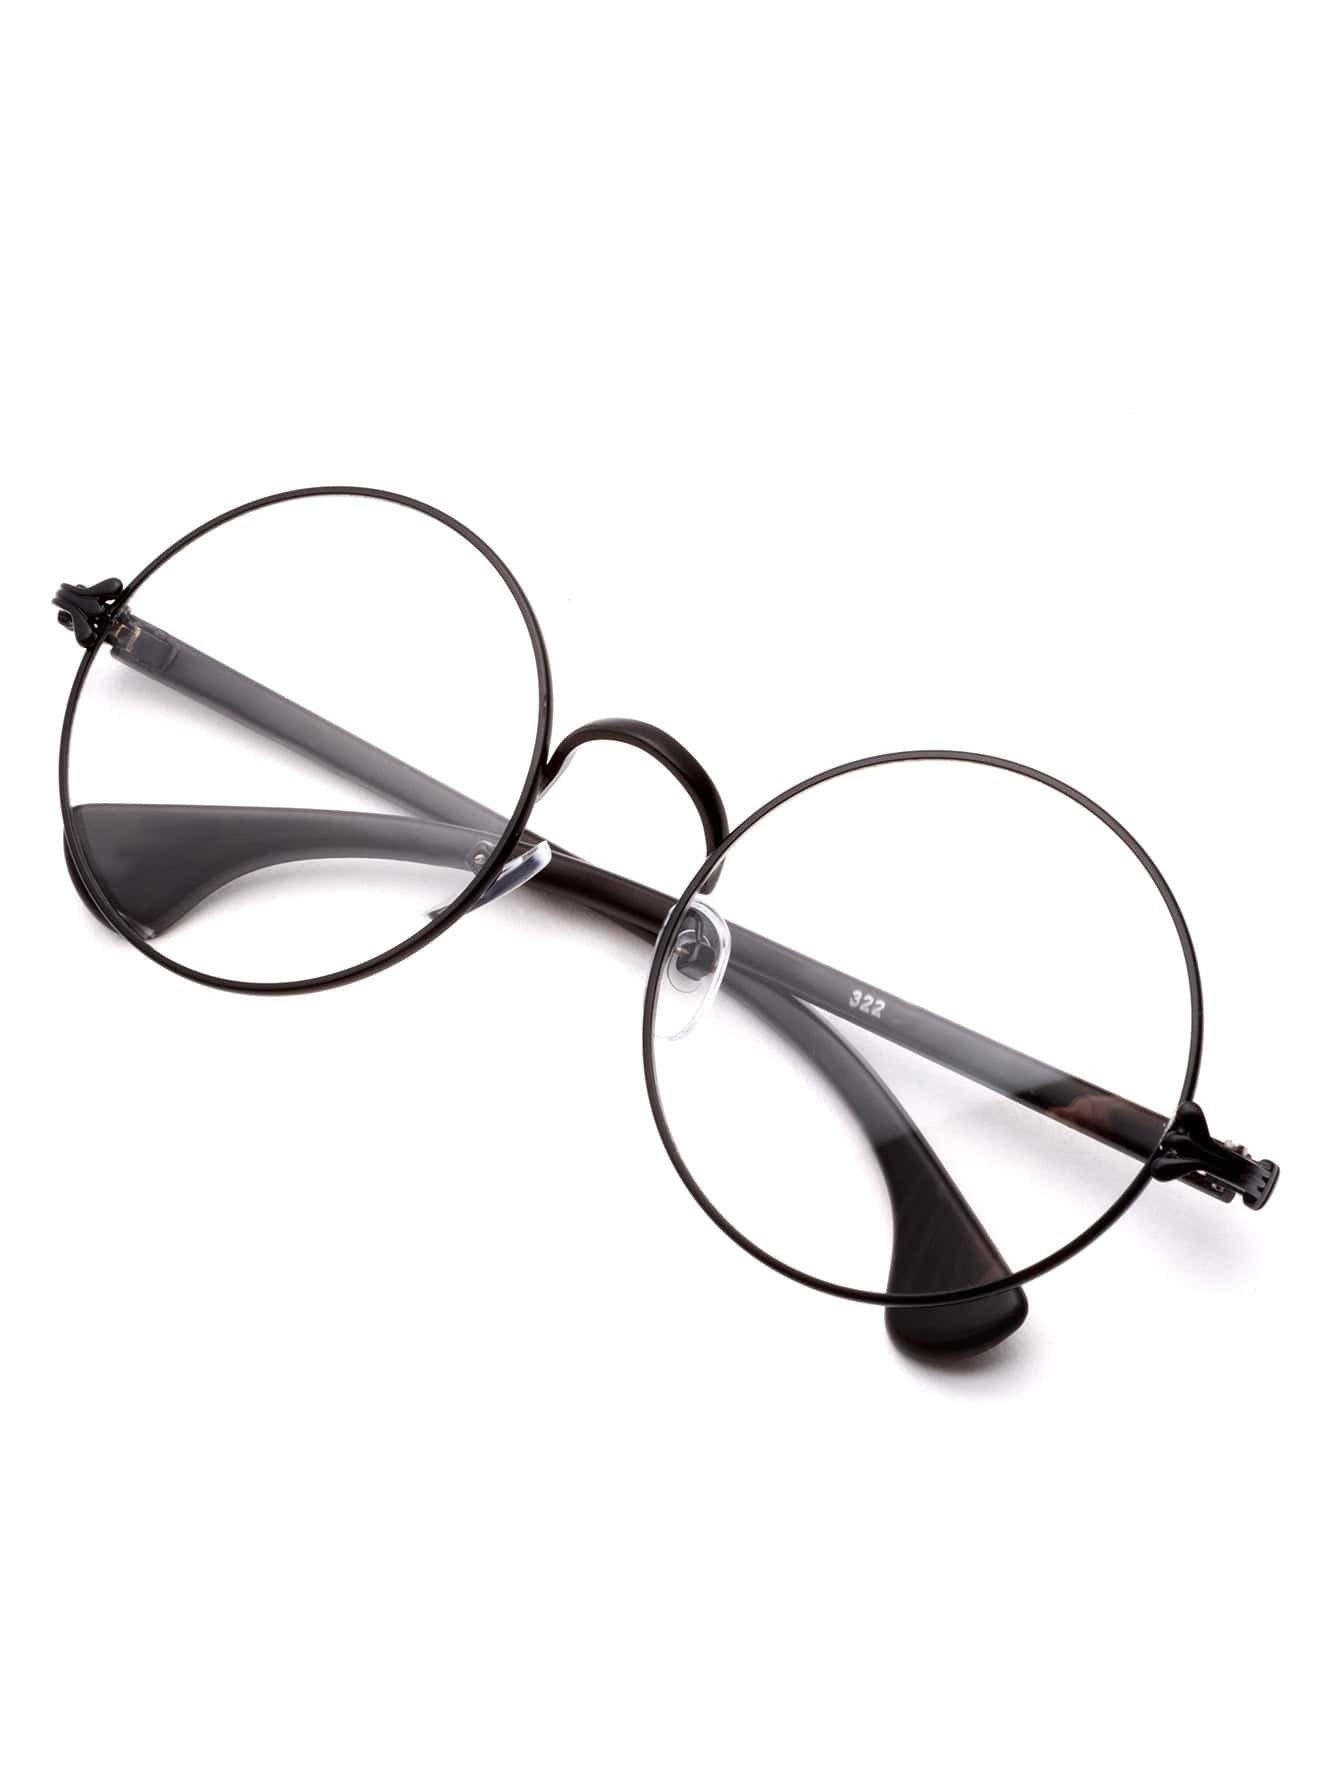 Matte Black Glasses Frame : Matte Black Frame Clear Lens Glasses